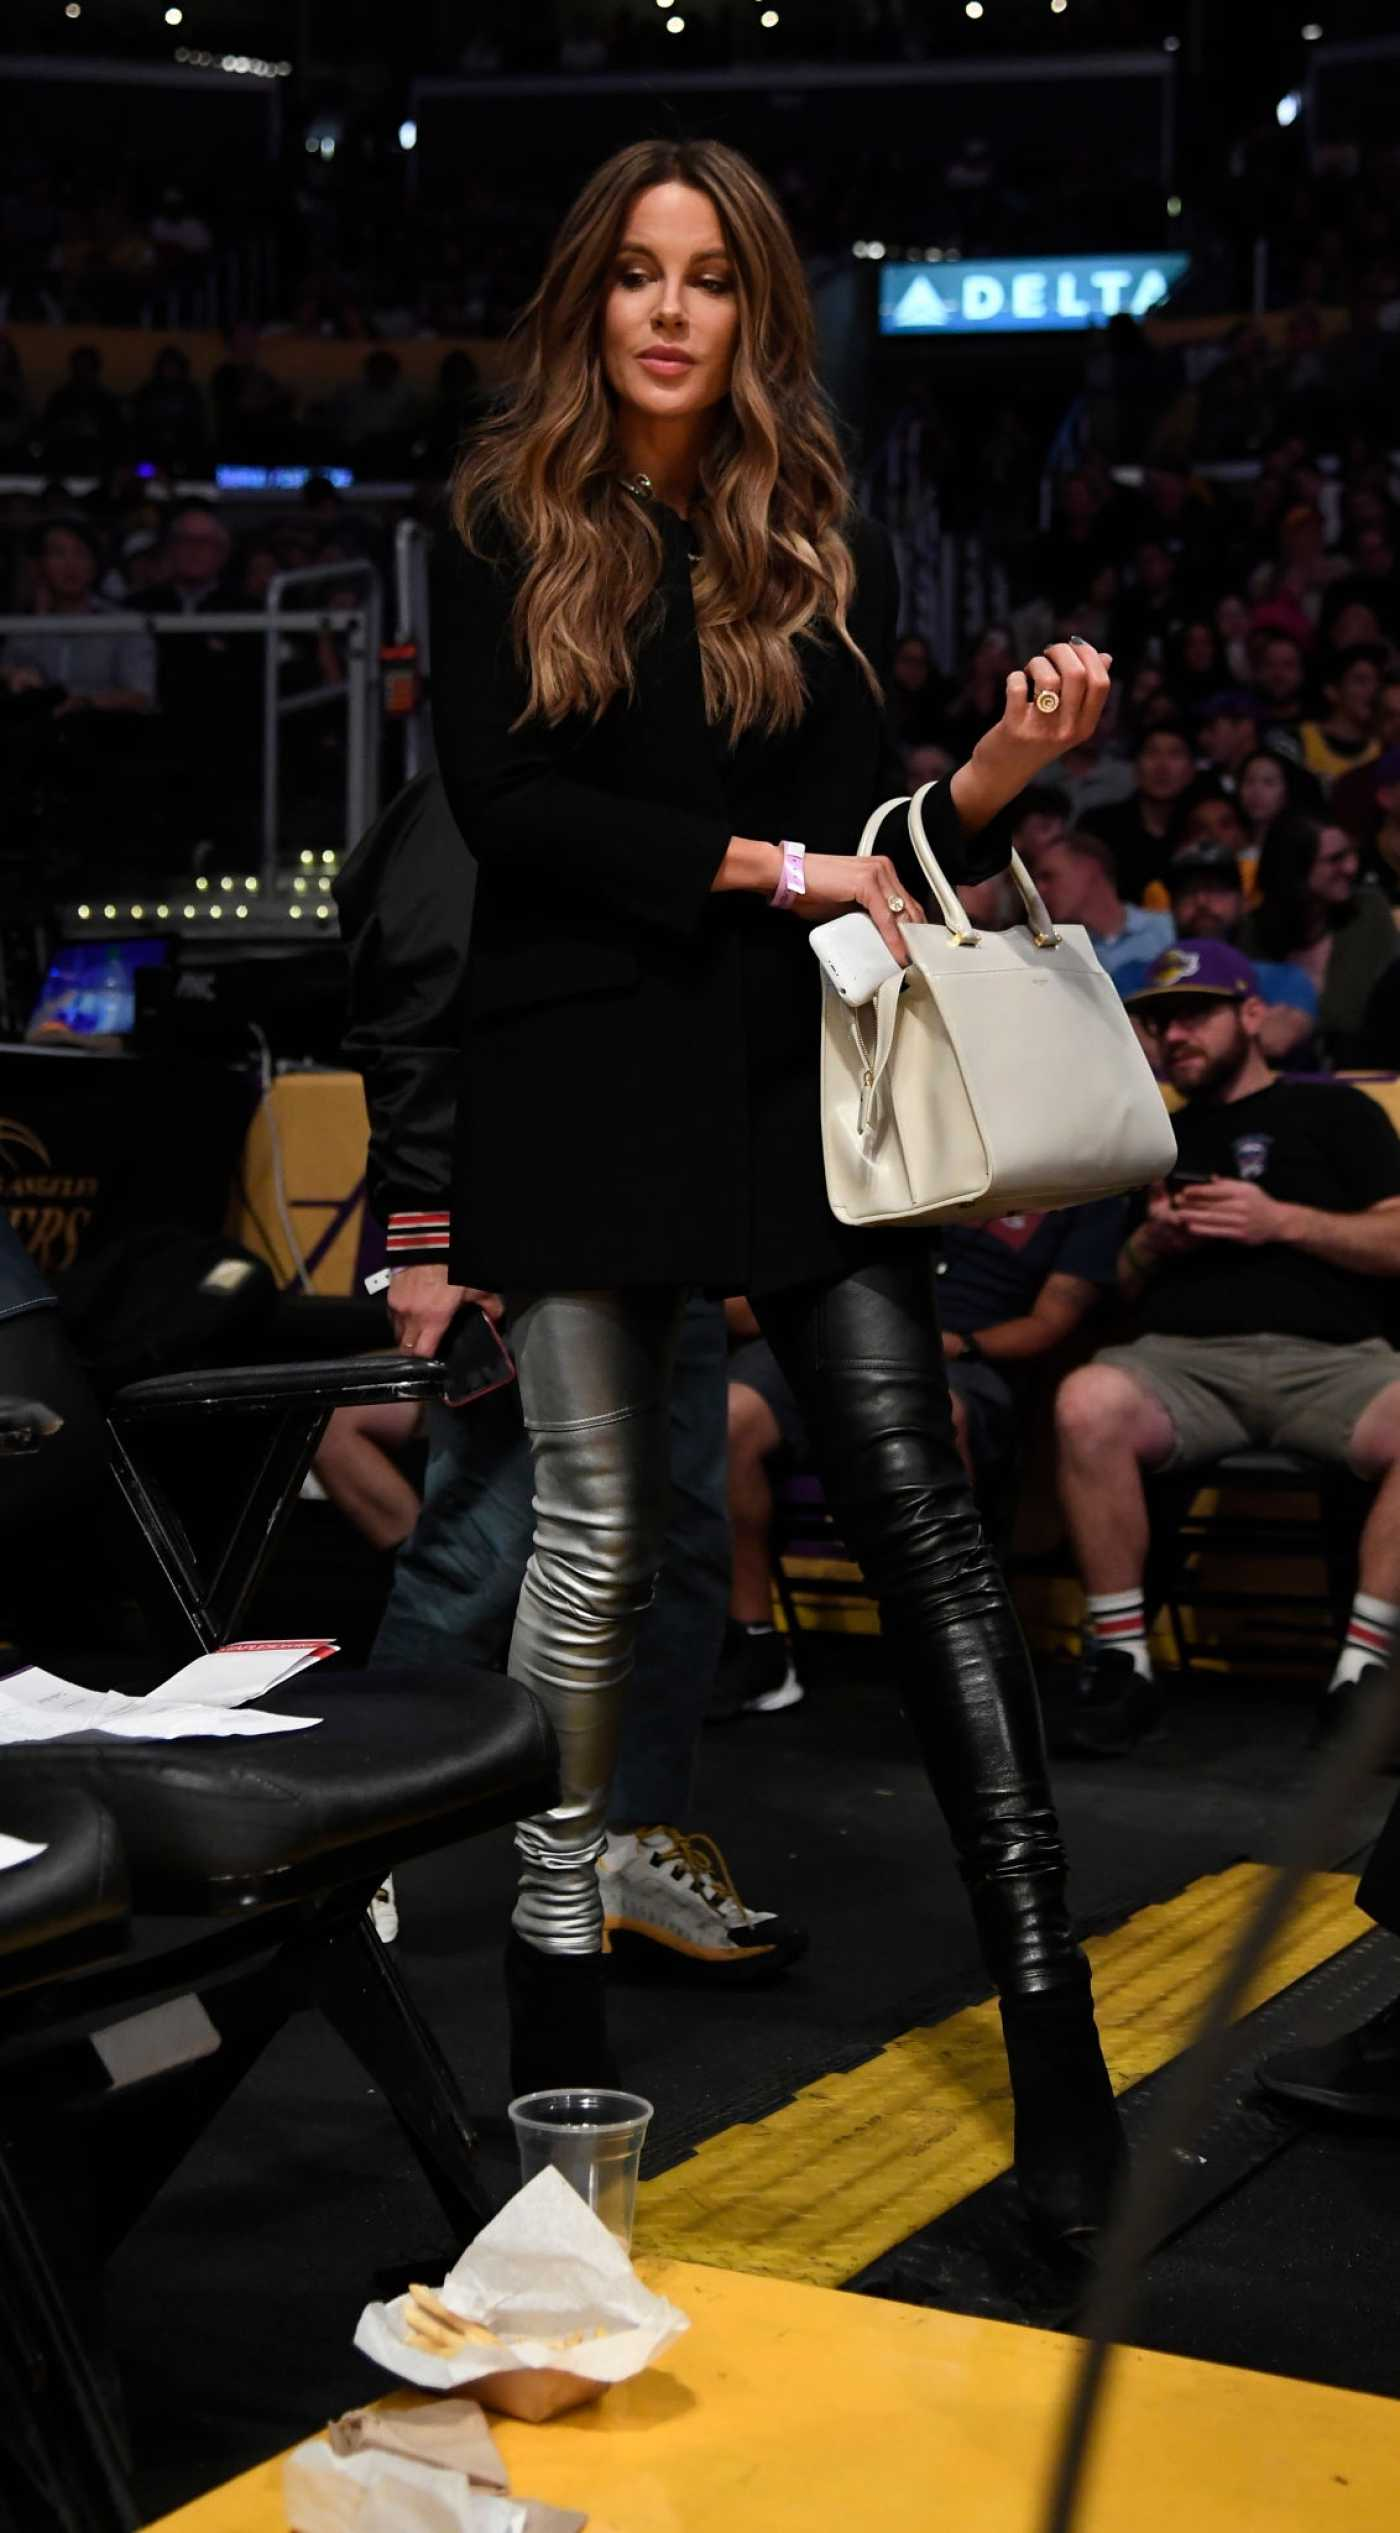 Kate Beckinsale Attends the Game Between Miami Heat and Los Angeles Lakers at Staples Center in Los Angeles 11/08/2019